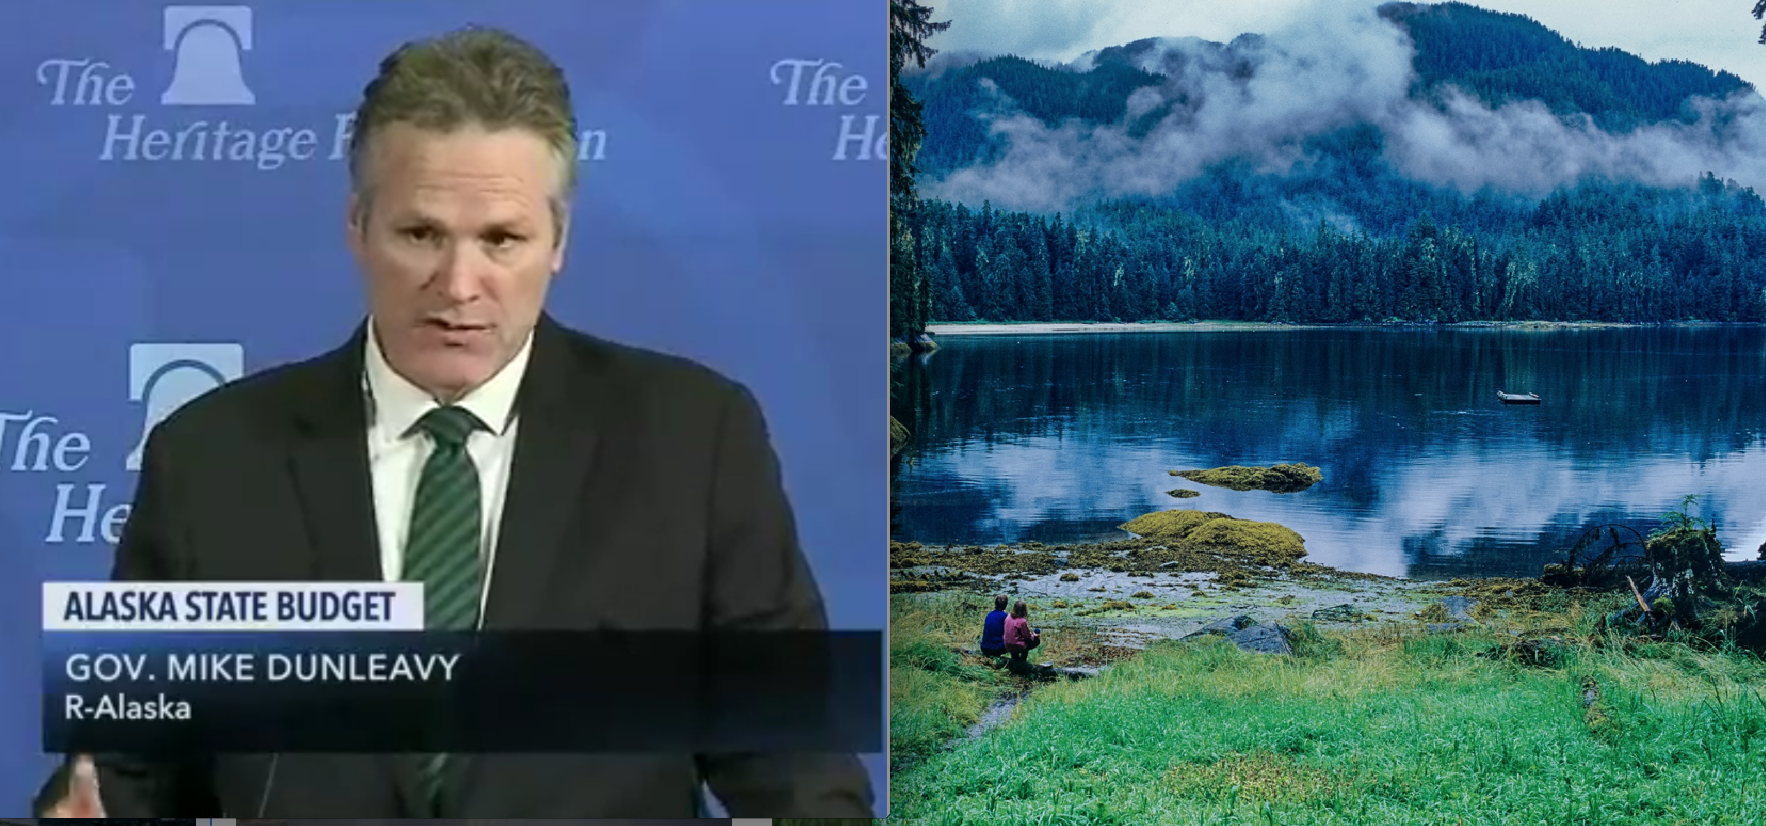 Gov. Dunleavy Pushes Hard for Mining, Logging the Tongass National Forest in Heritage Speech